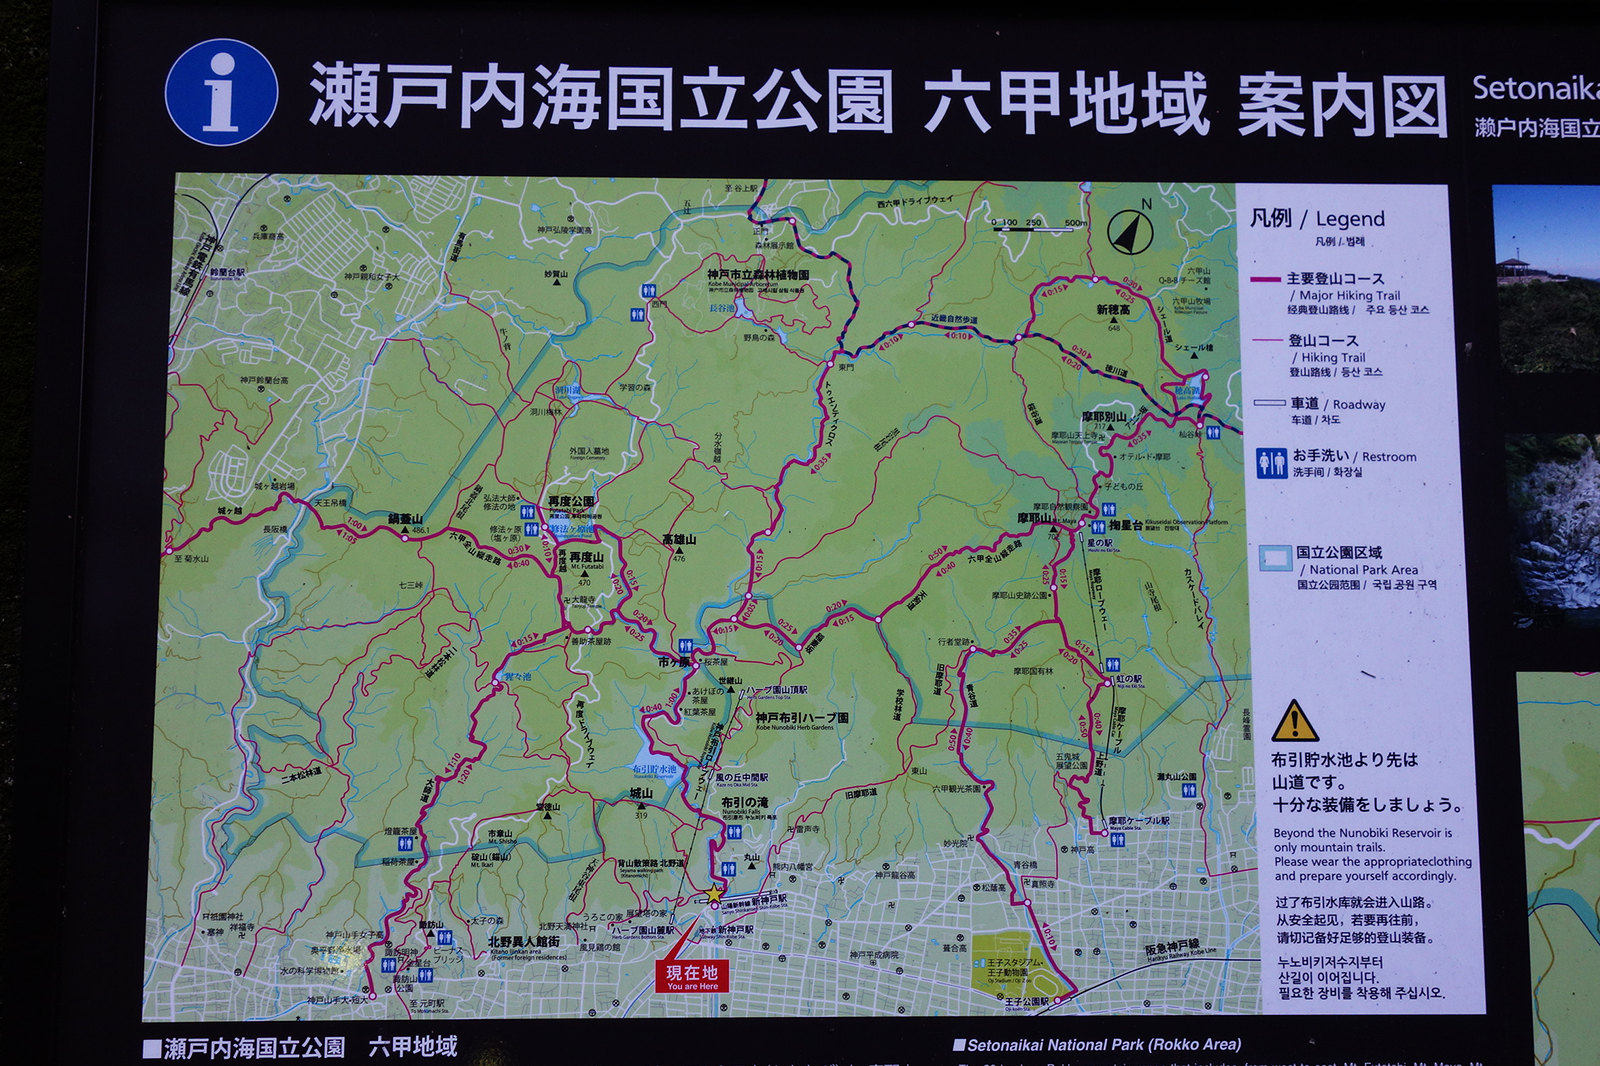 20171027-shinkobe-map.jpg